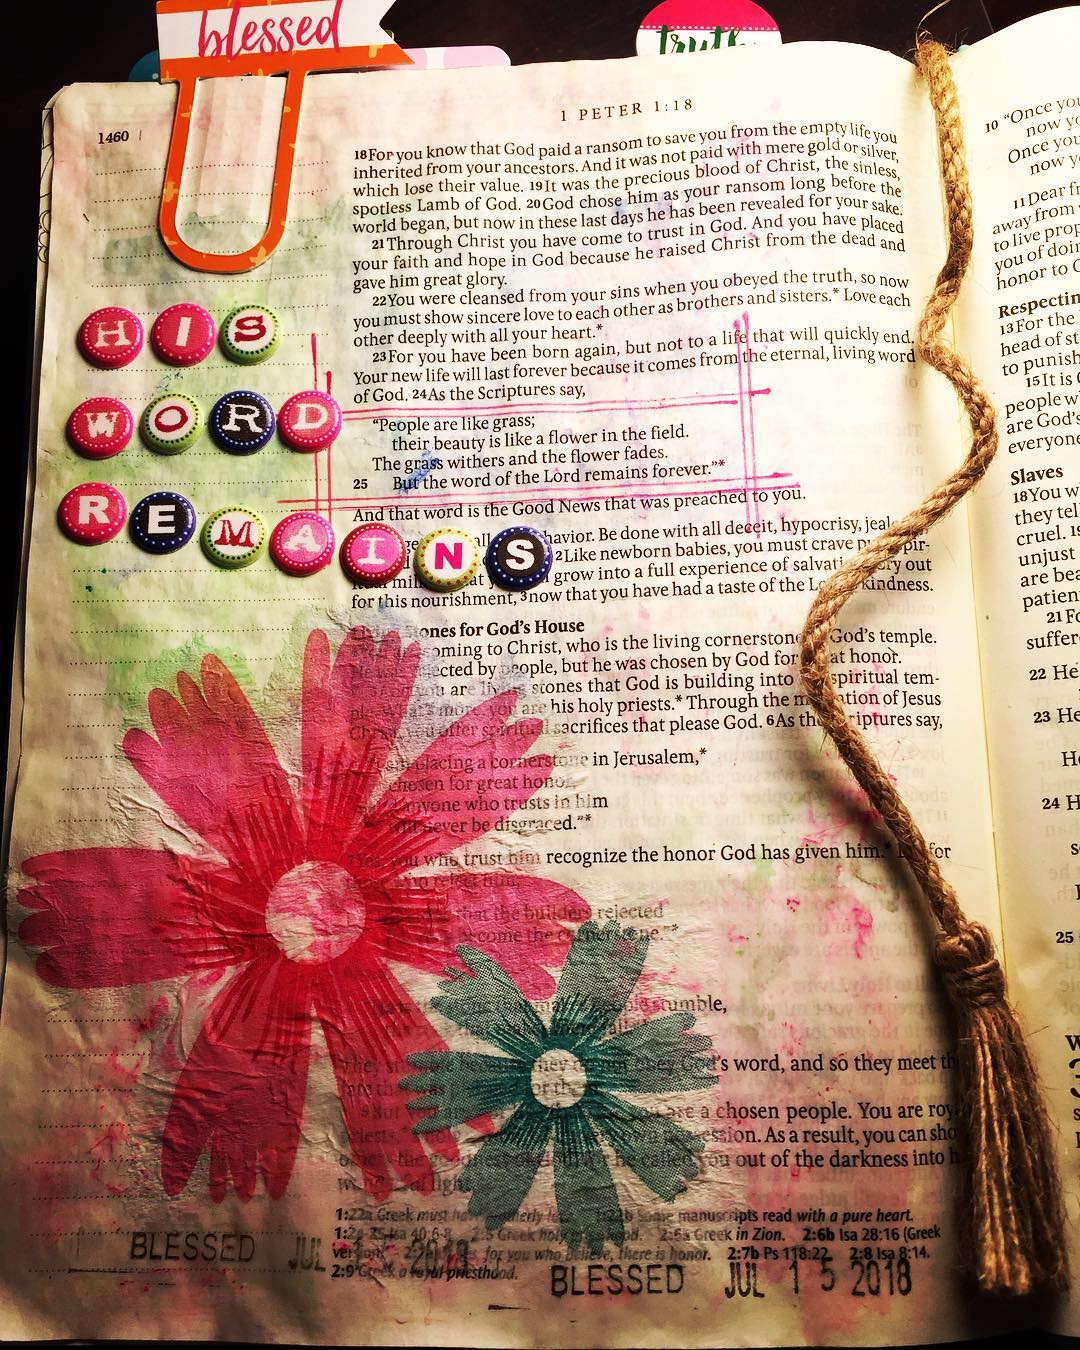 Why I draw on the pages of my Bible - Yvette Walker - Medium